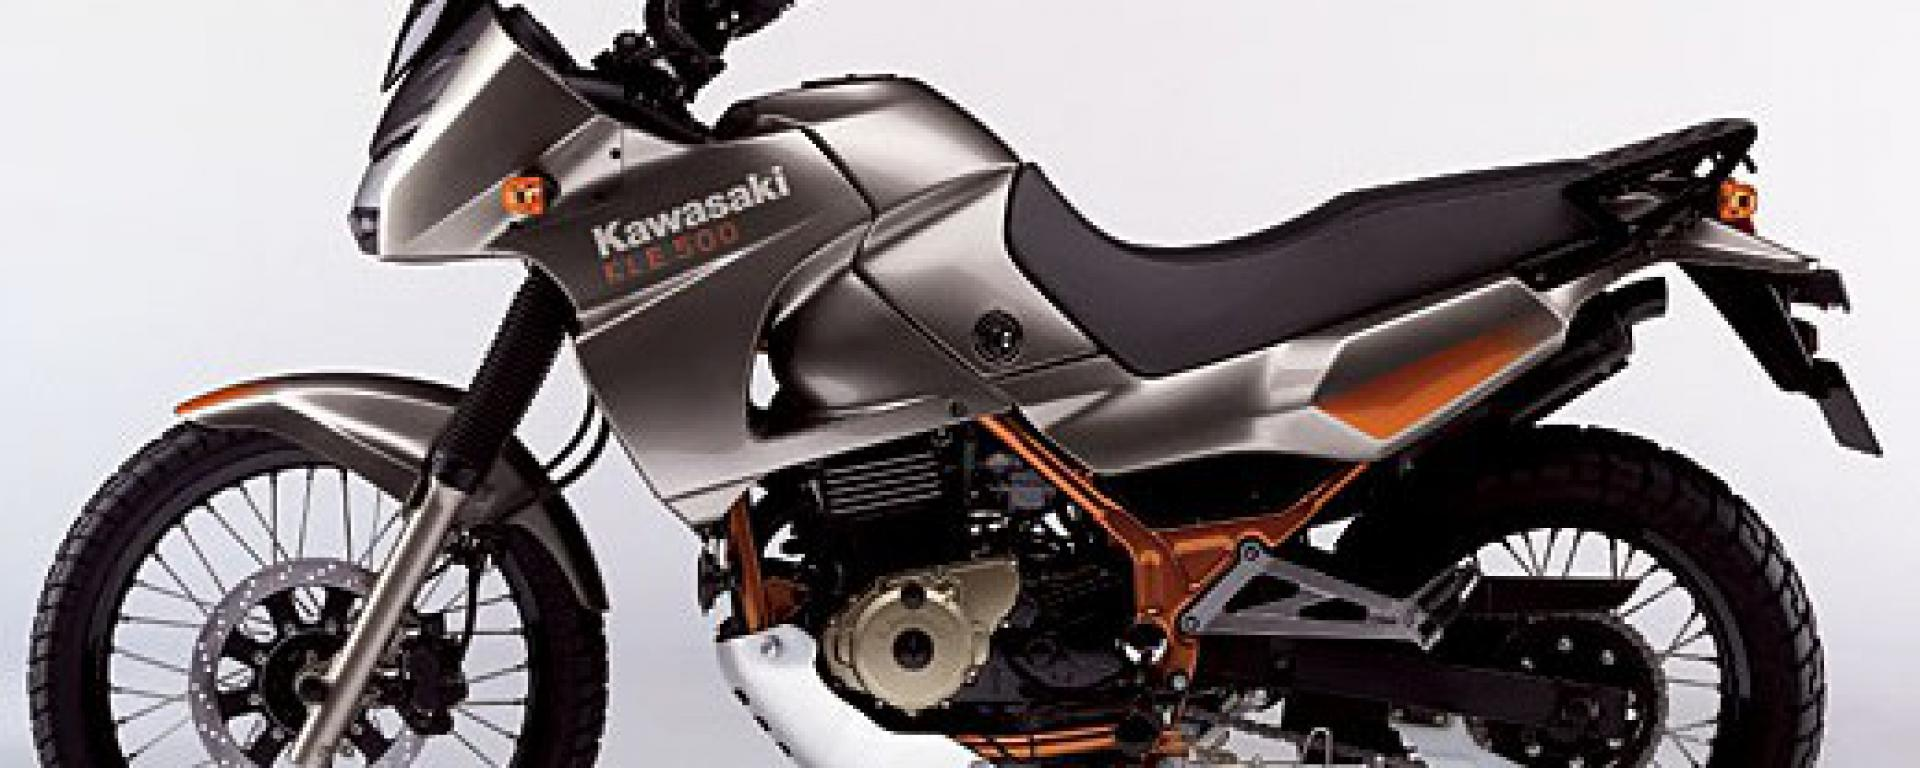 2006 kawasaki kle 500 pics specs and information. Black Bedroom Furniture Sets. Home Design Ideas